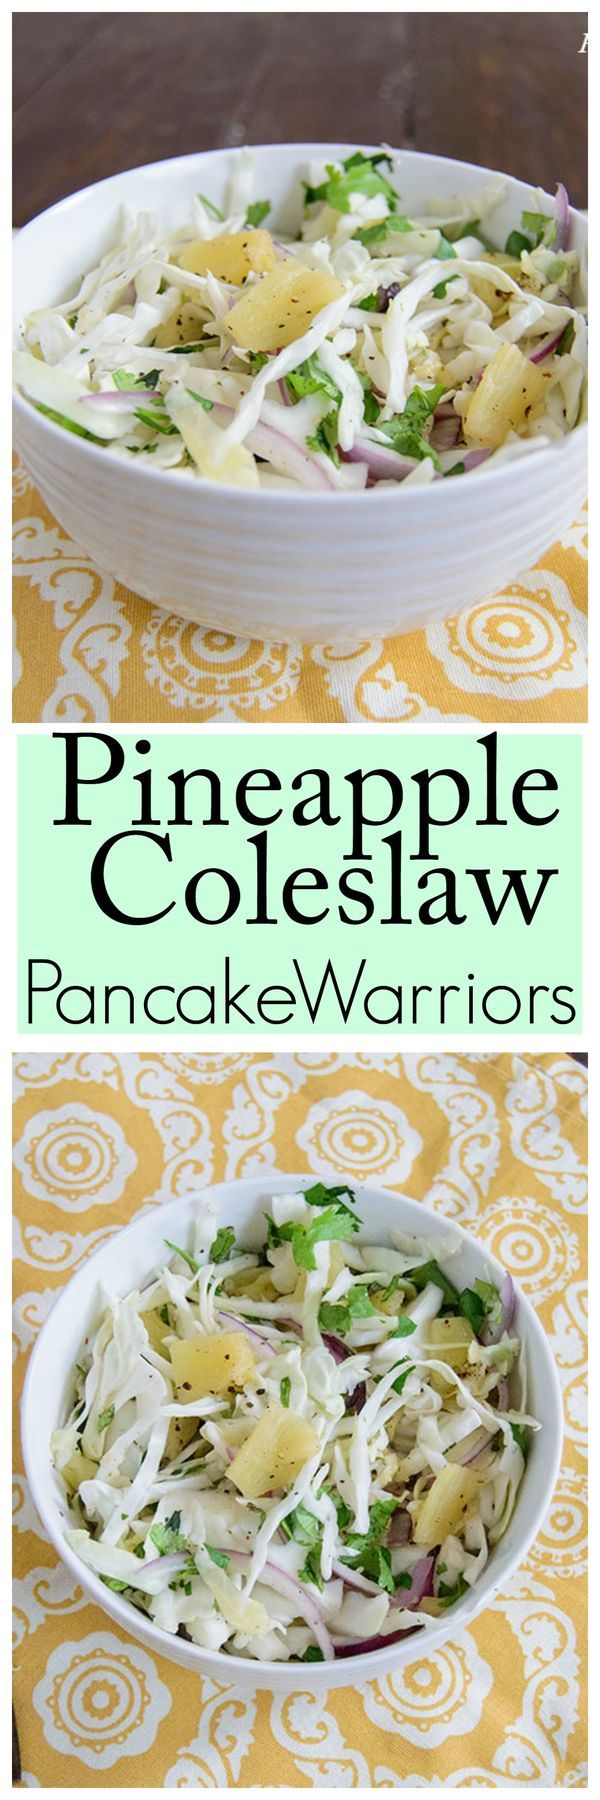 Pineapple Coleslaw Recipe - this low fat, vegan, paleo coleslaw is a perfect dish for summer get together or an easy weeknight dinner side dish!  Perfect for cookouts, no refrigeration needed!!